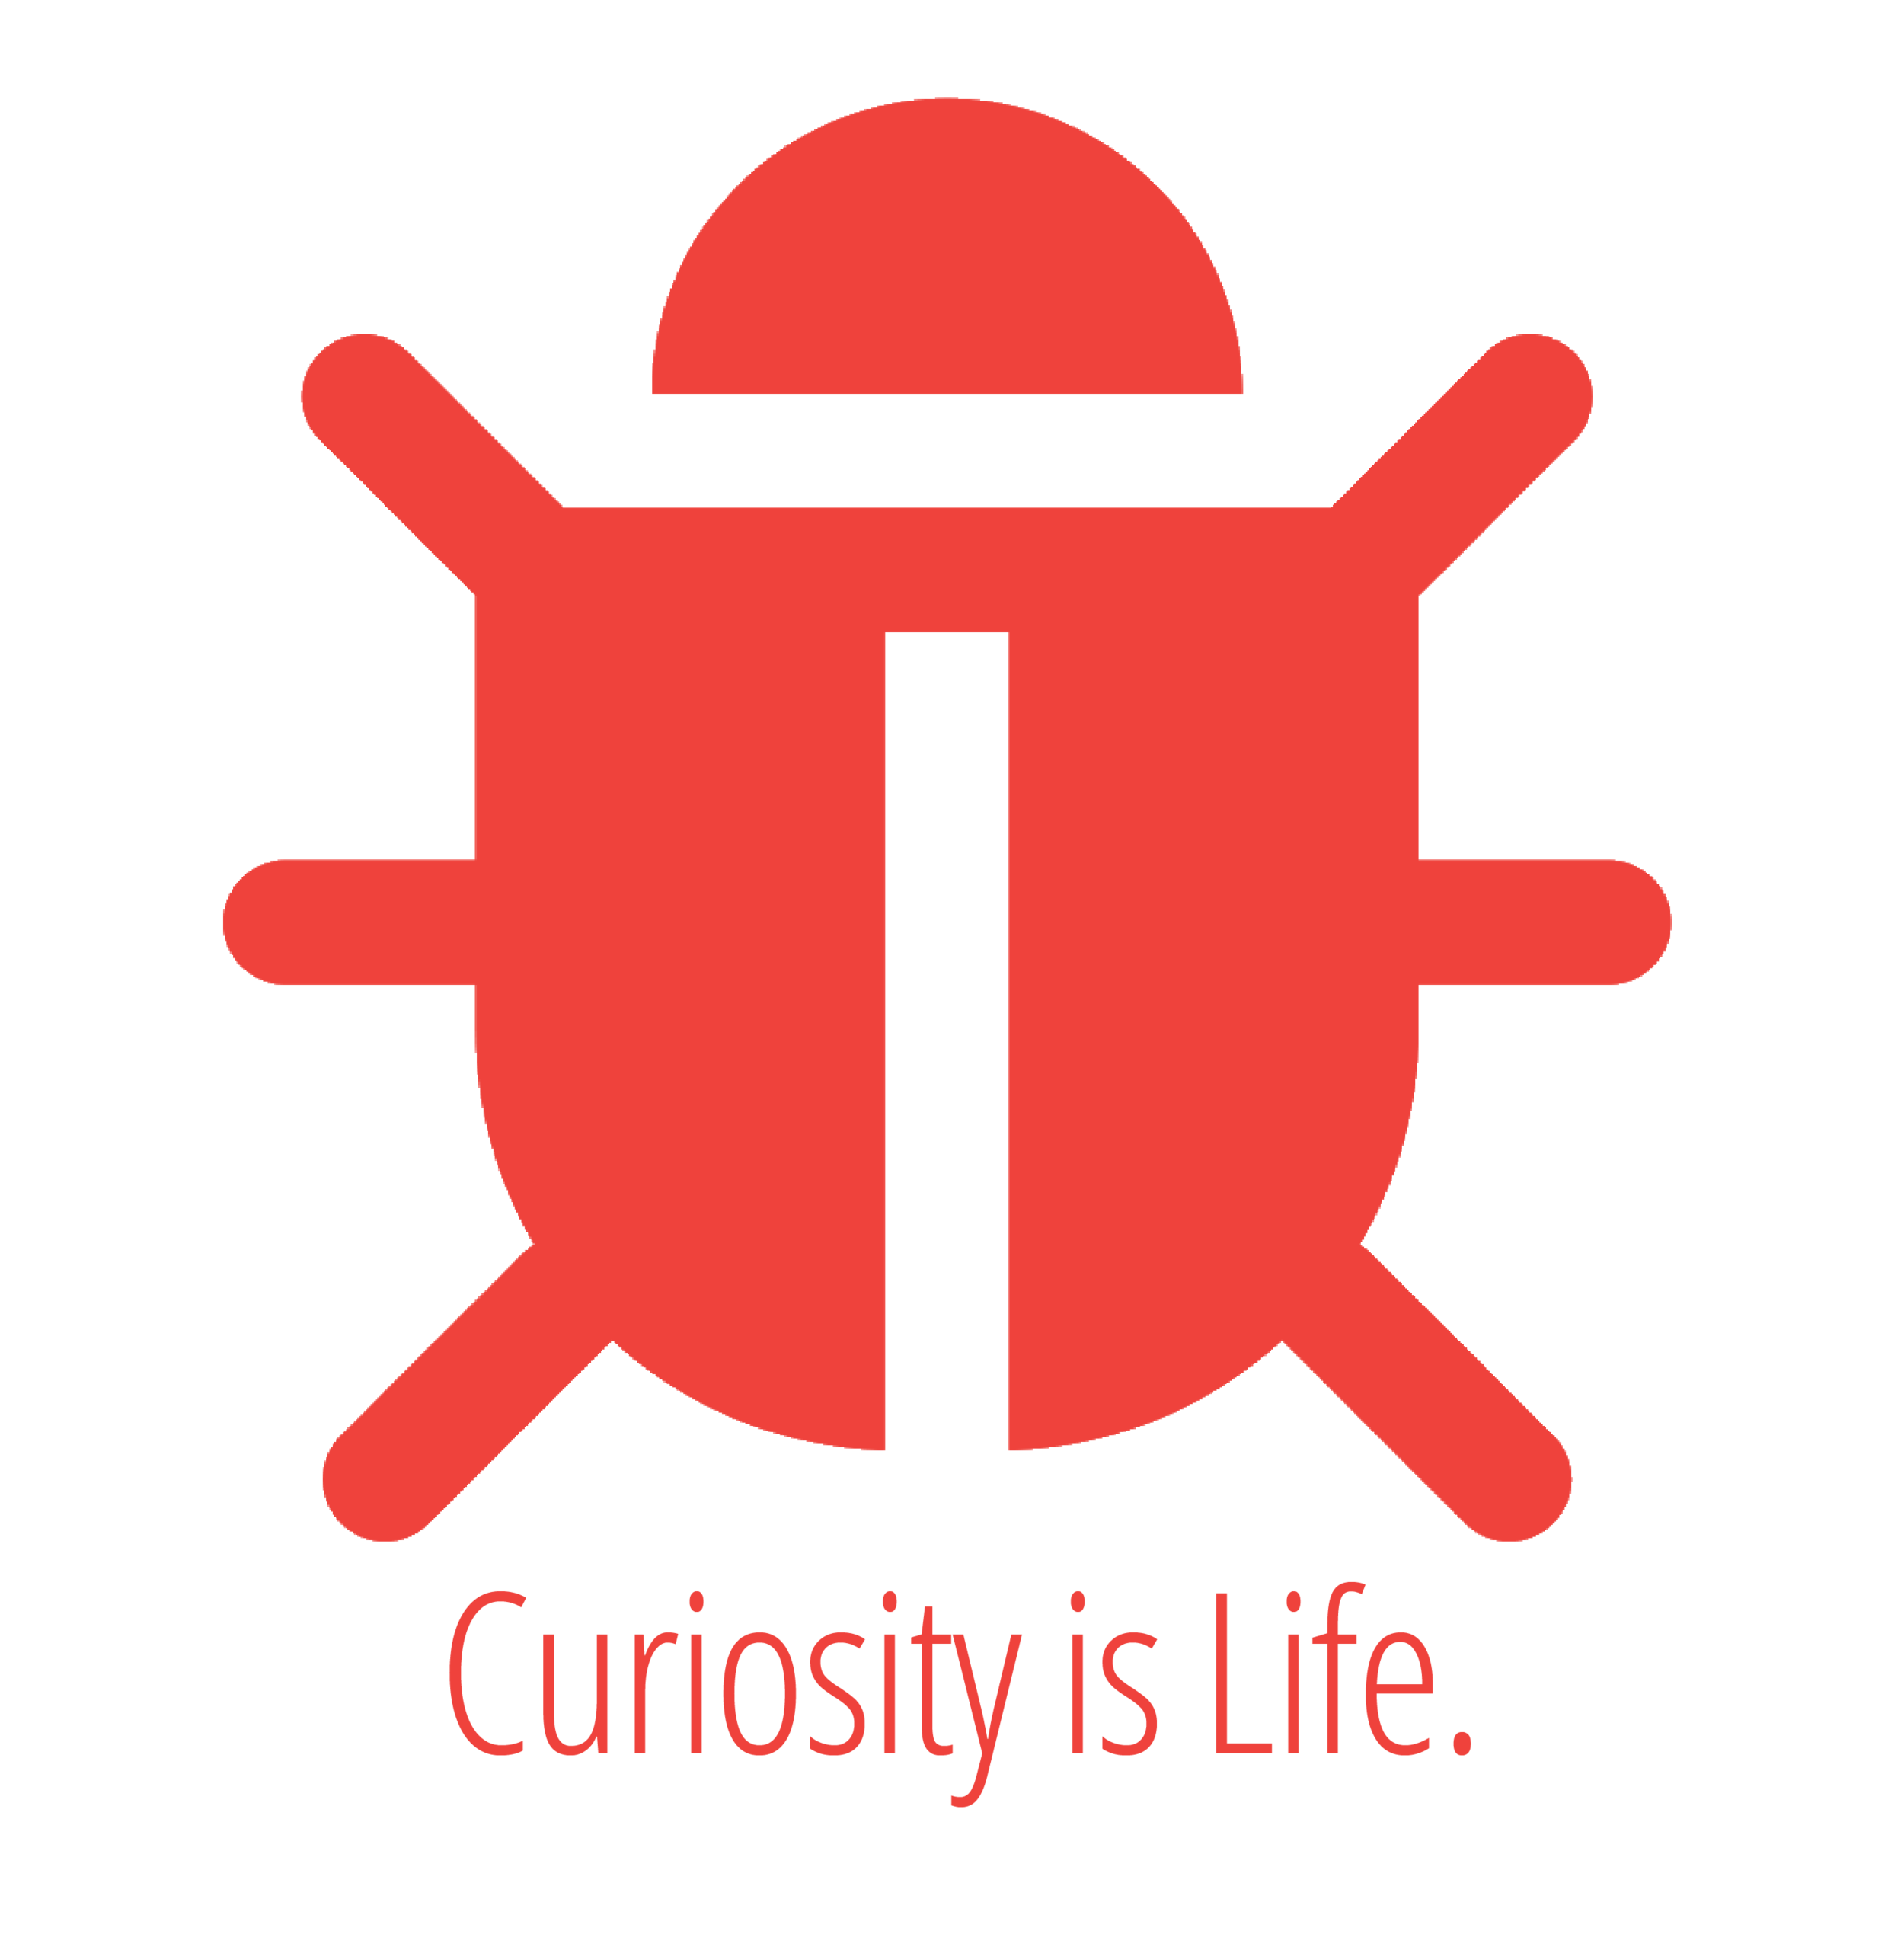 bug-curiosity-is-life-02.png